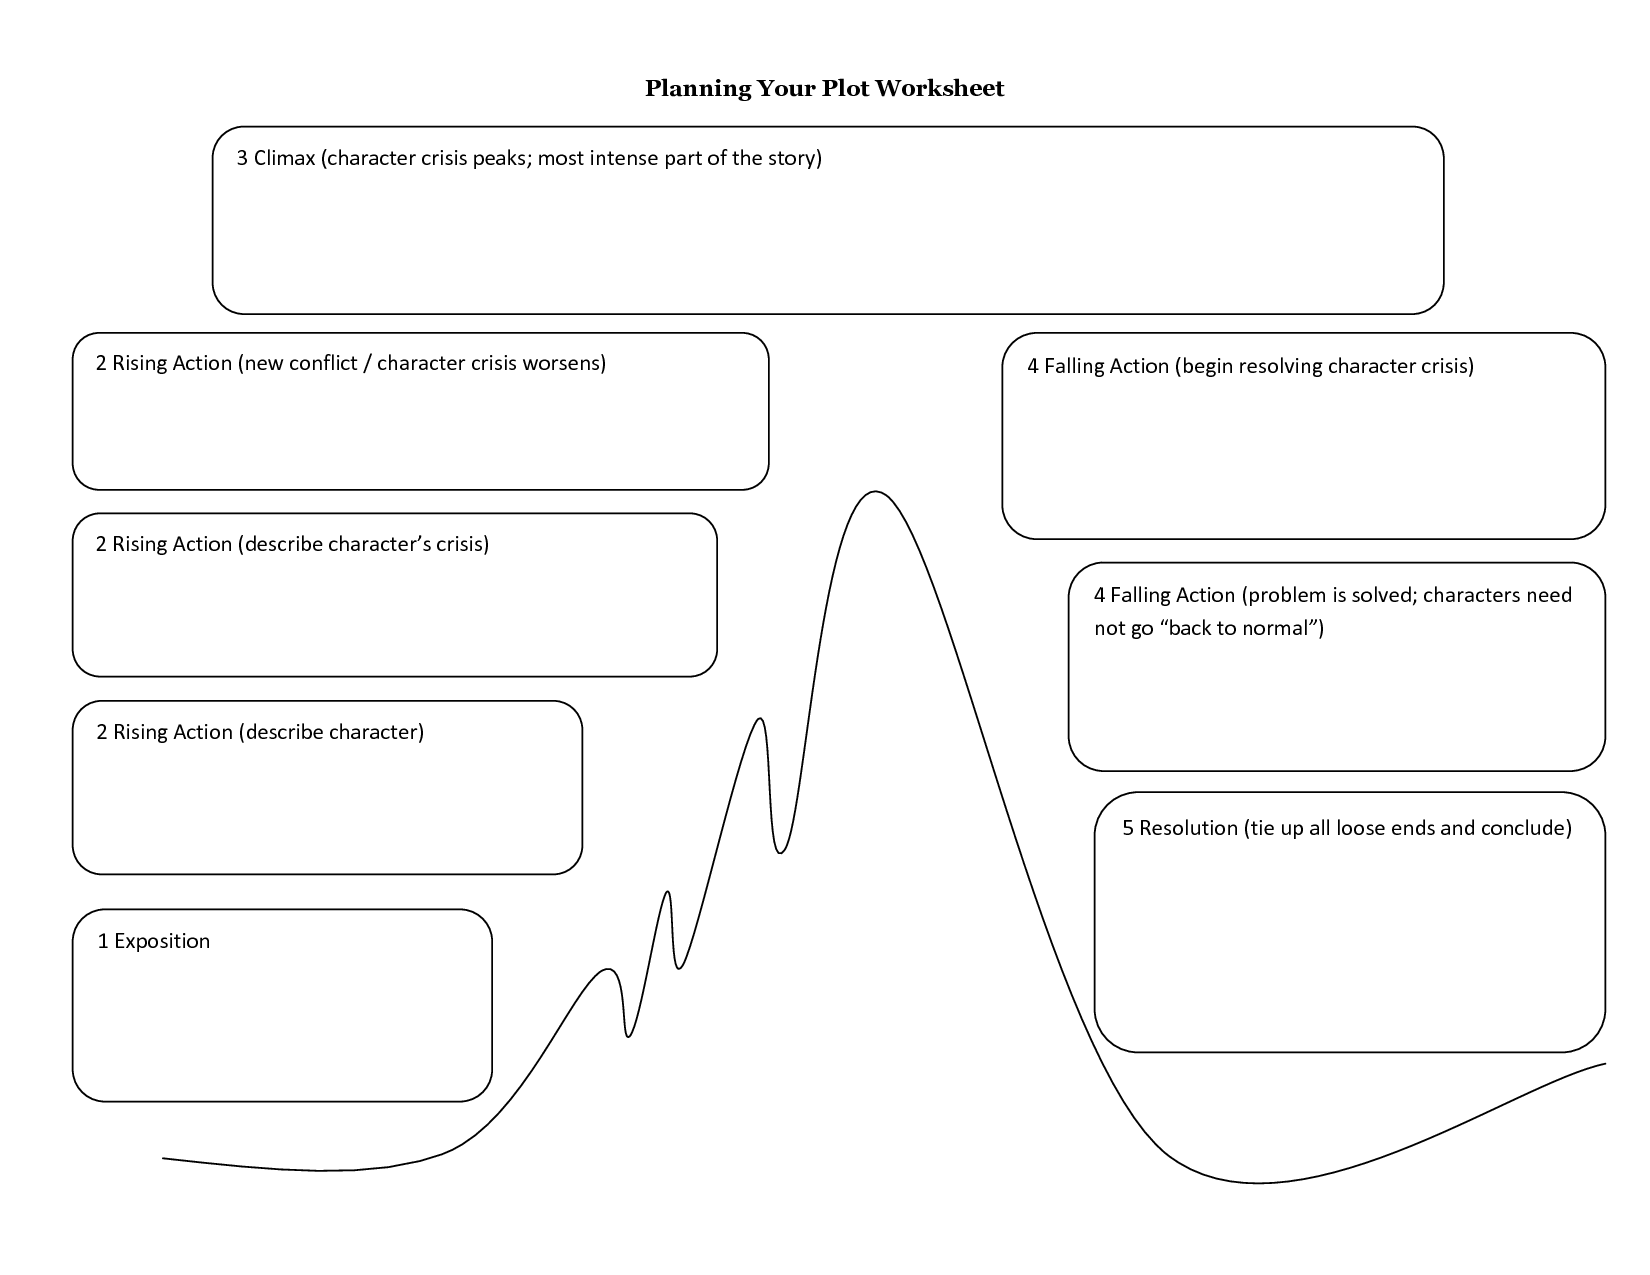 worksheet Plot Development Worksheet parts of a story worksheet planning your plot 1 exposition 2 rising action